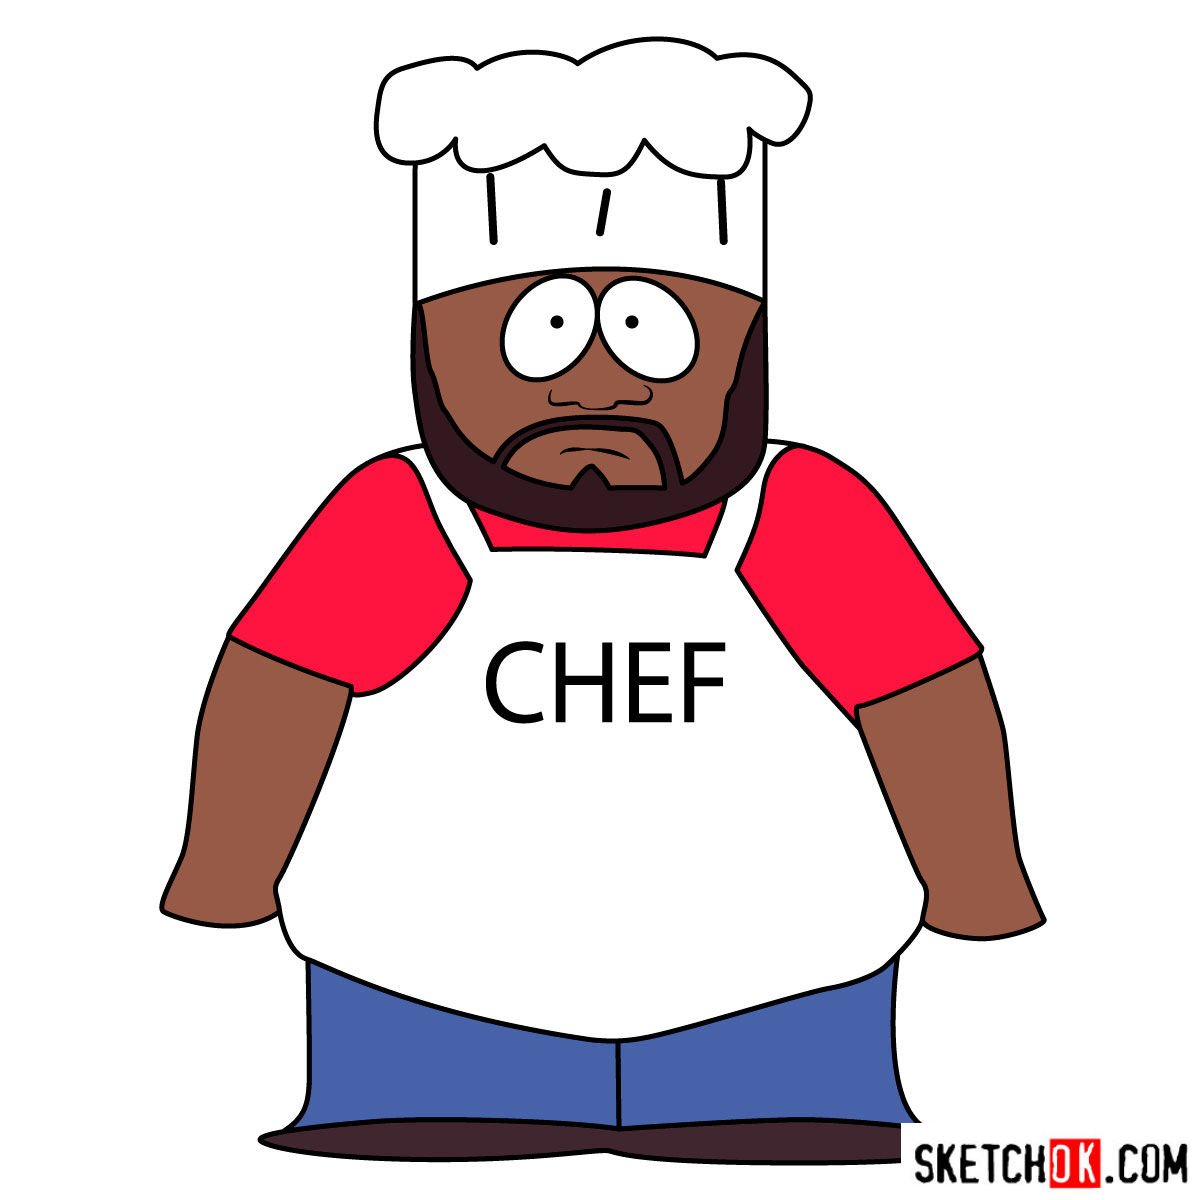 How to draw Chef McElroy from South Park